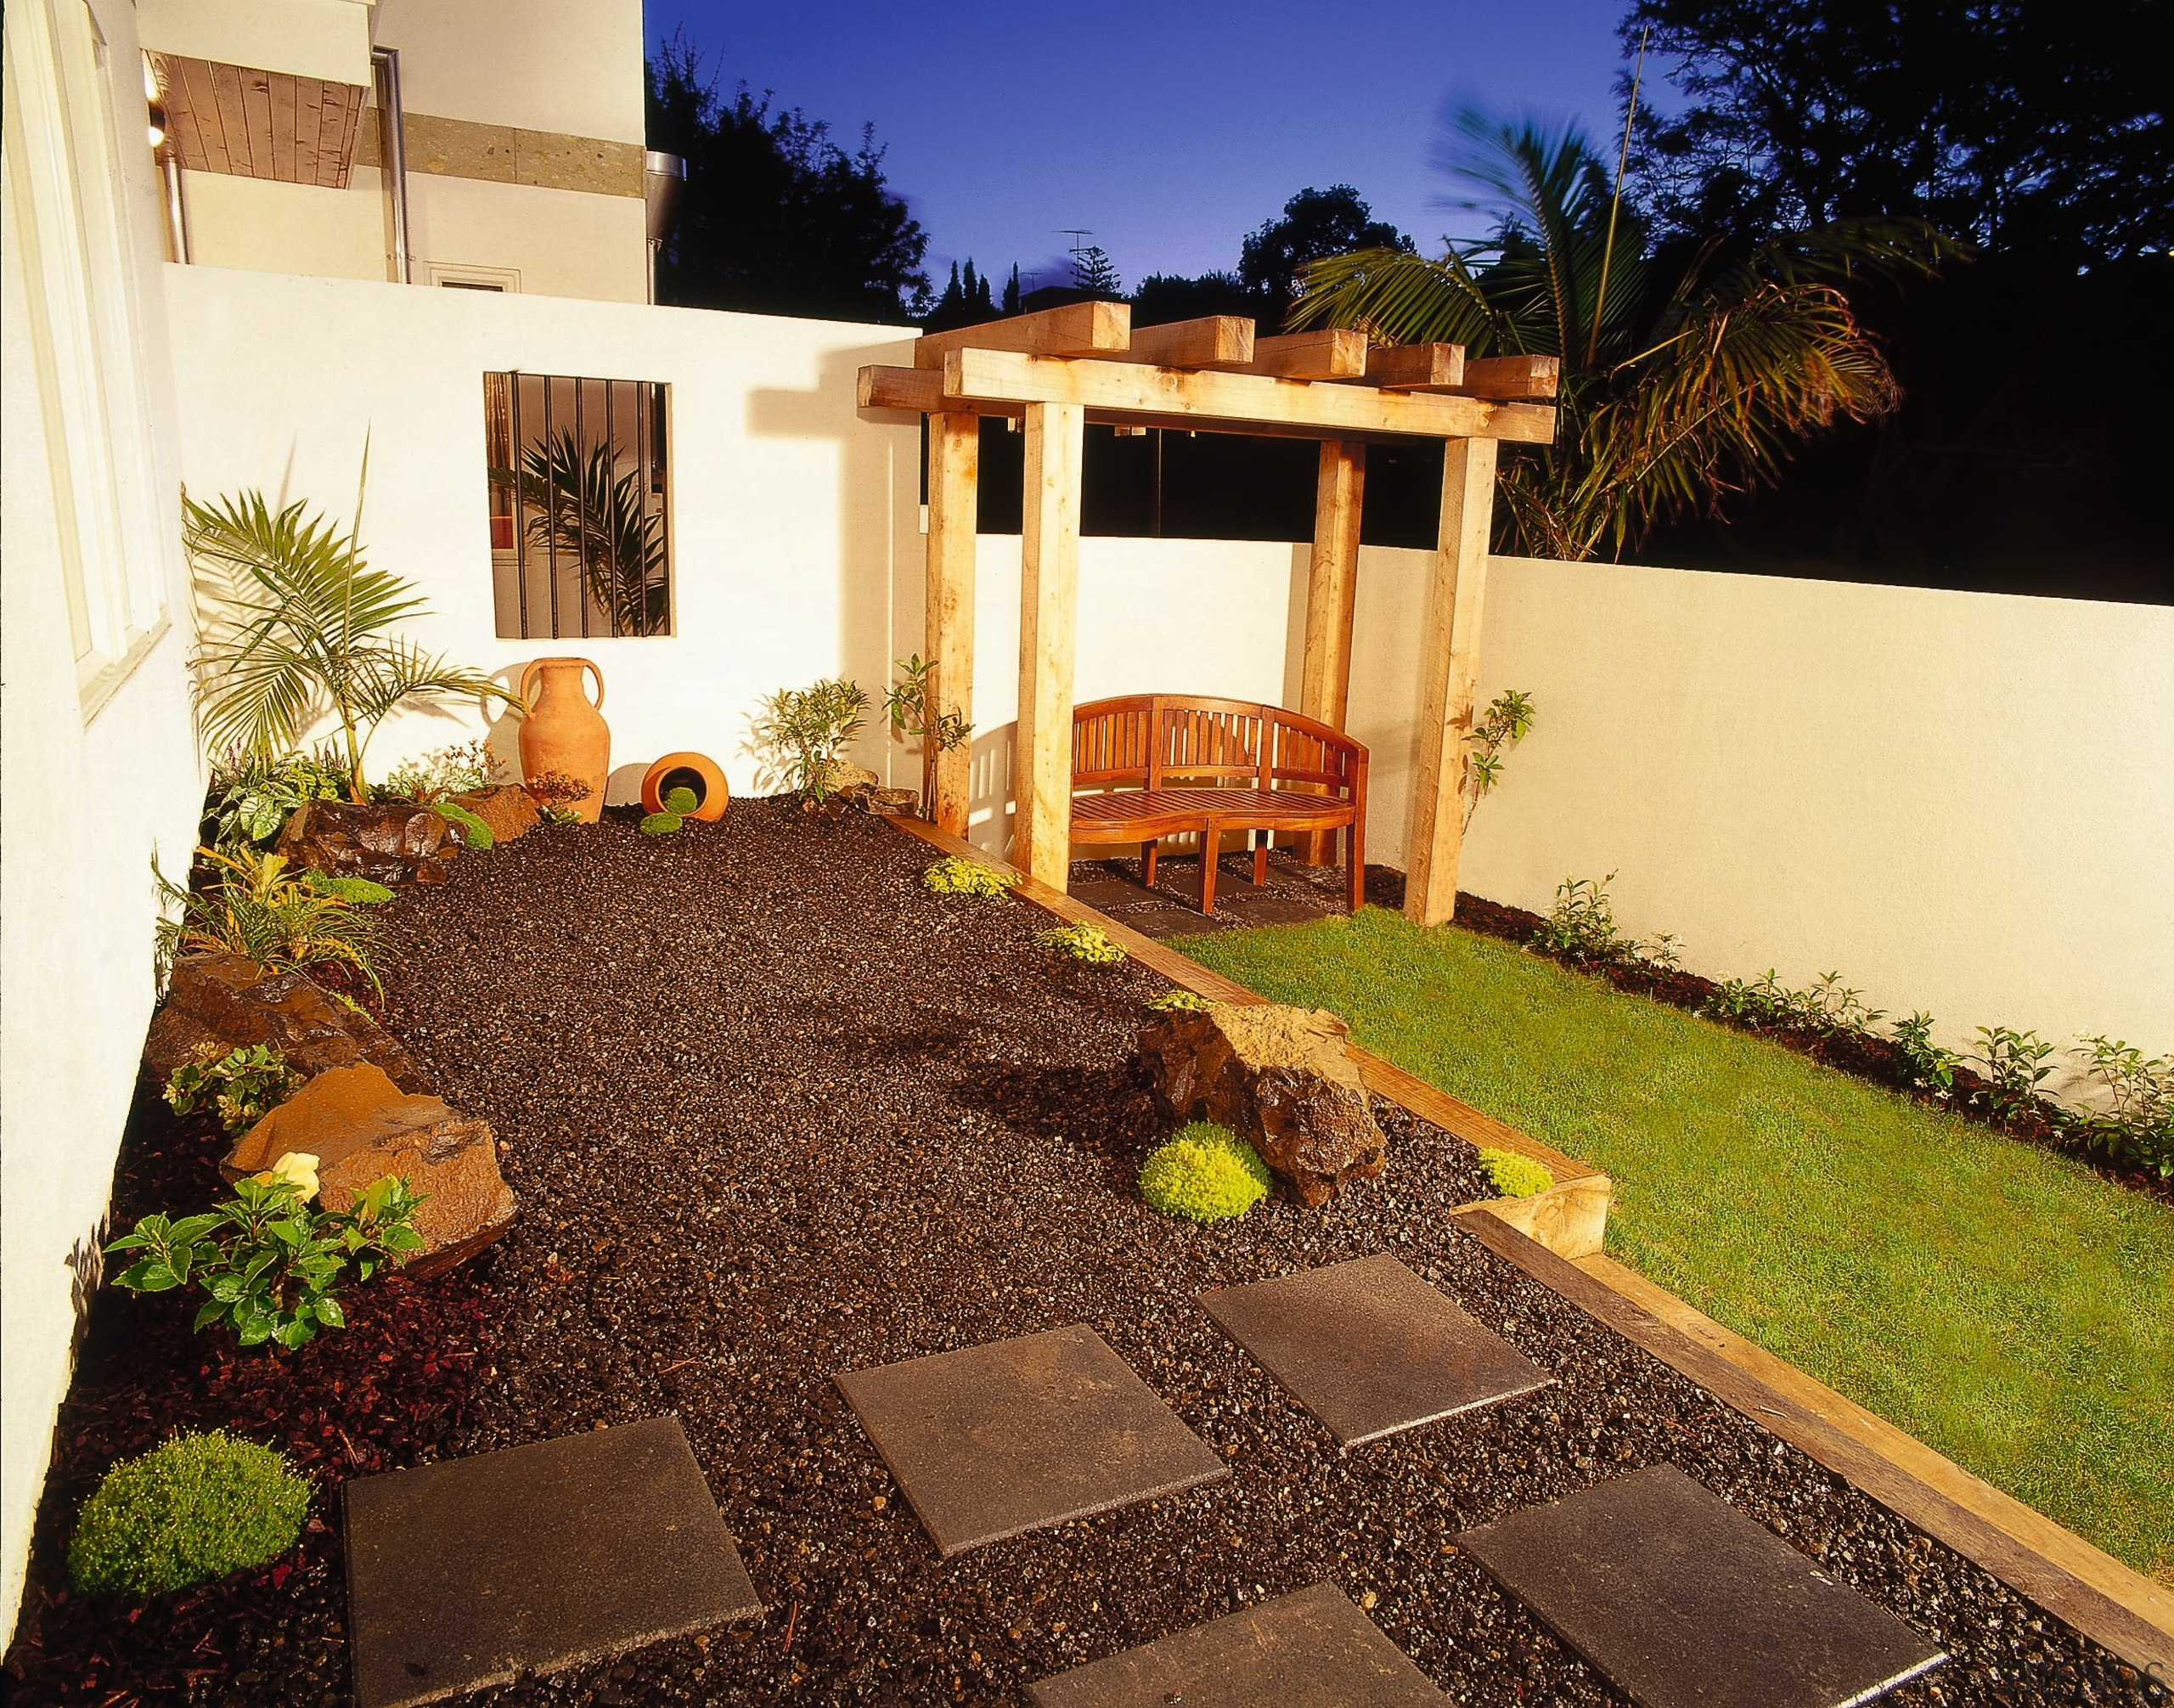 Raised Stone Chip Garden With Pavers, Rocks, Urns, Window Set In Cream  Garden Wall, Large Wooden Seat Set On Lawn Under Chunky Pergola.